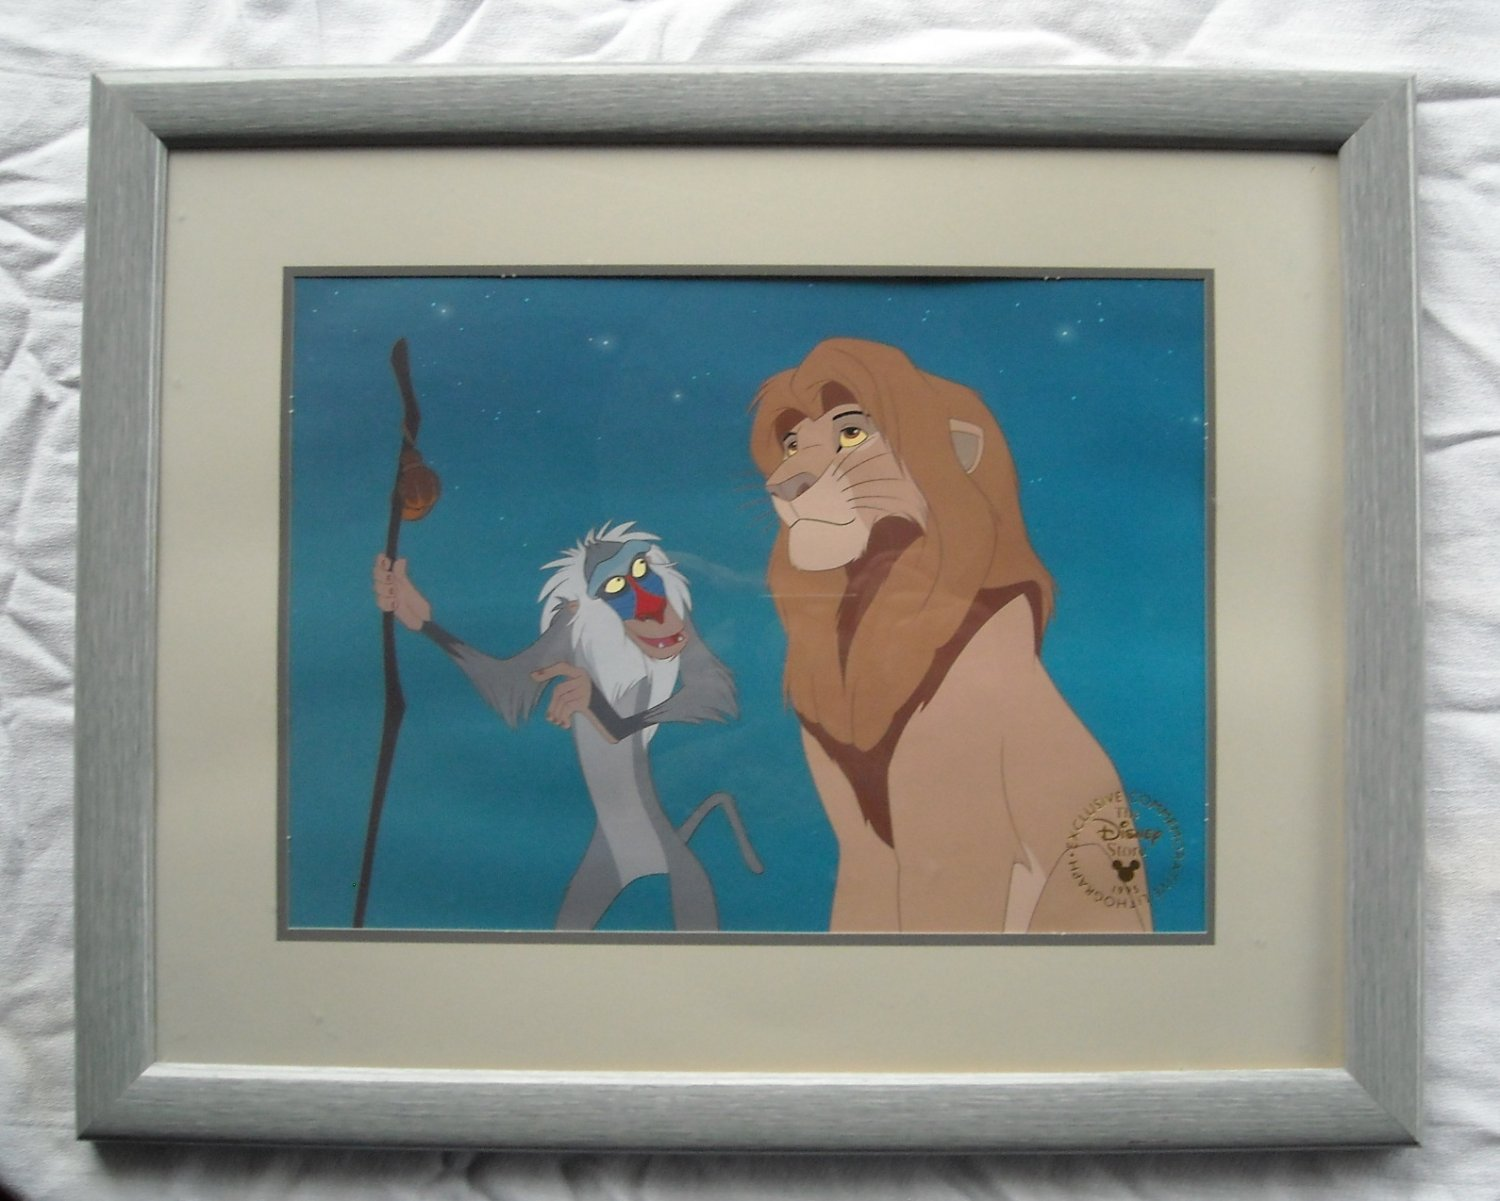 Walt Disney Exclusive Commemorative Lithograph The Lion King Framed 1995